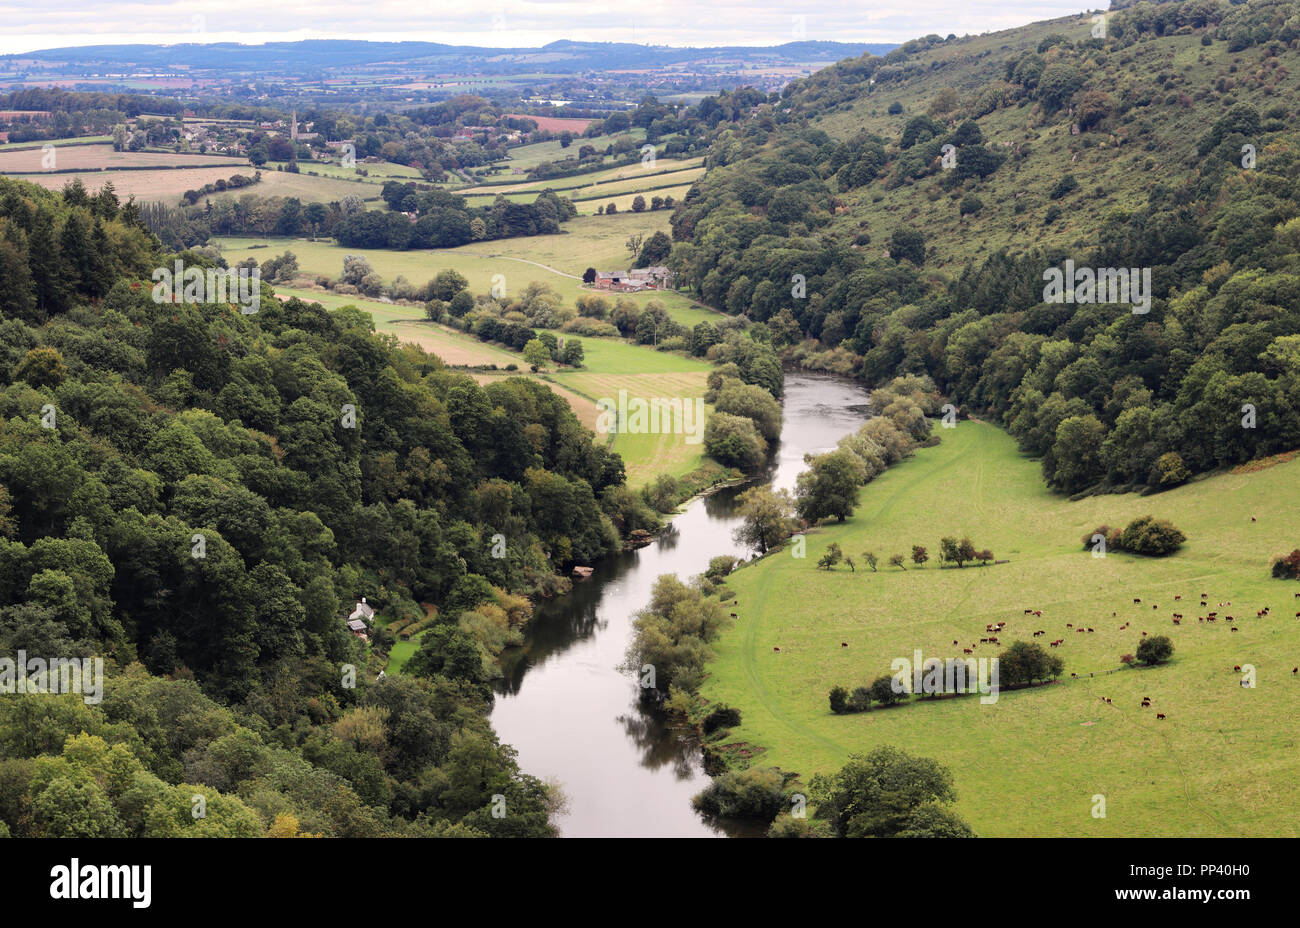 View from Symonds Yat Rock overlooking the river Wye - Stock Image